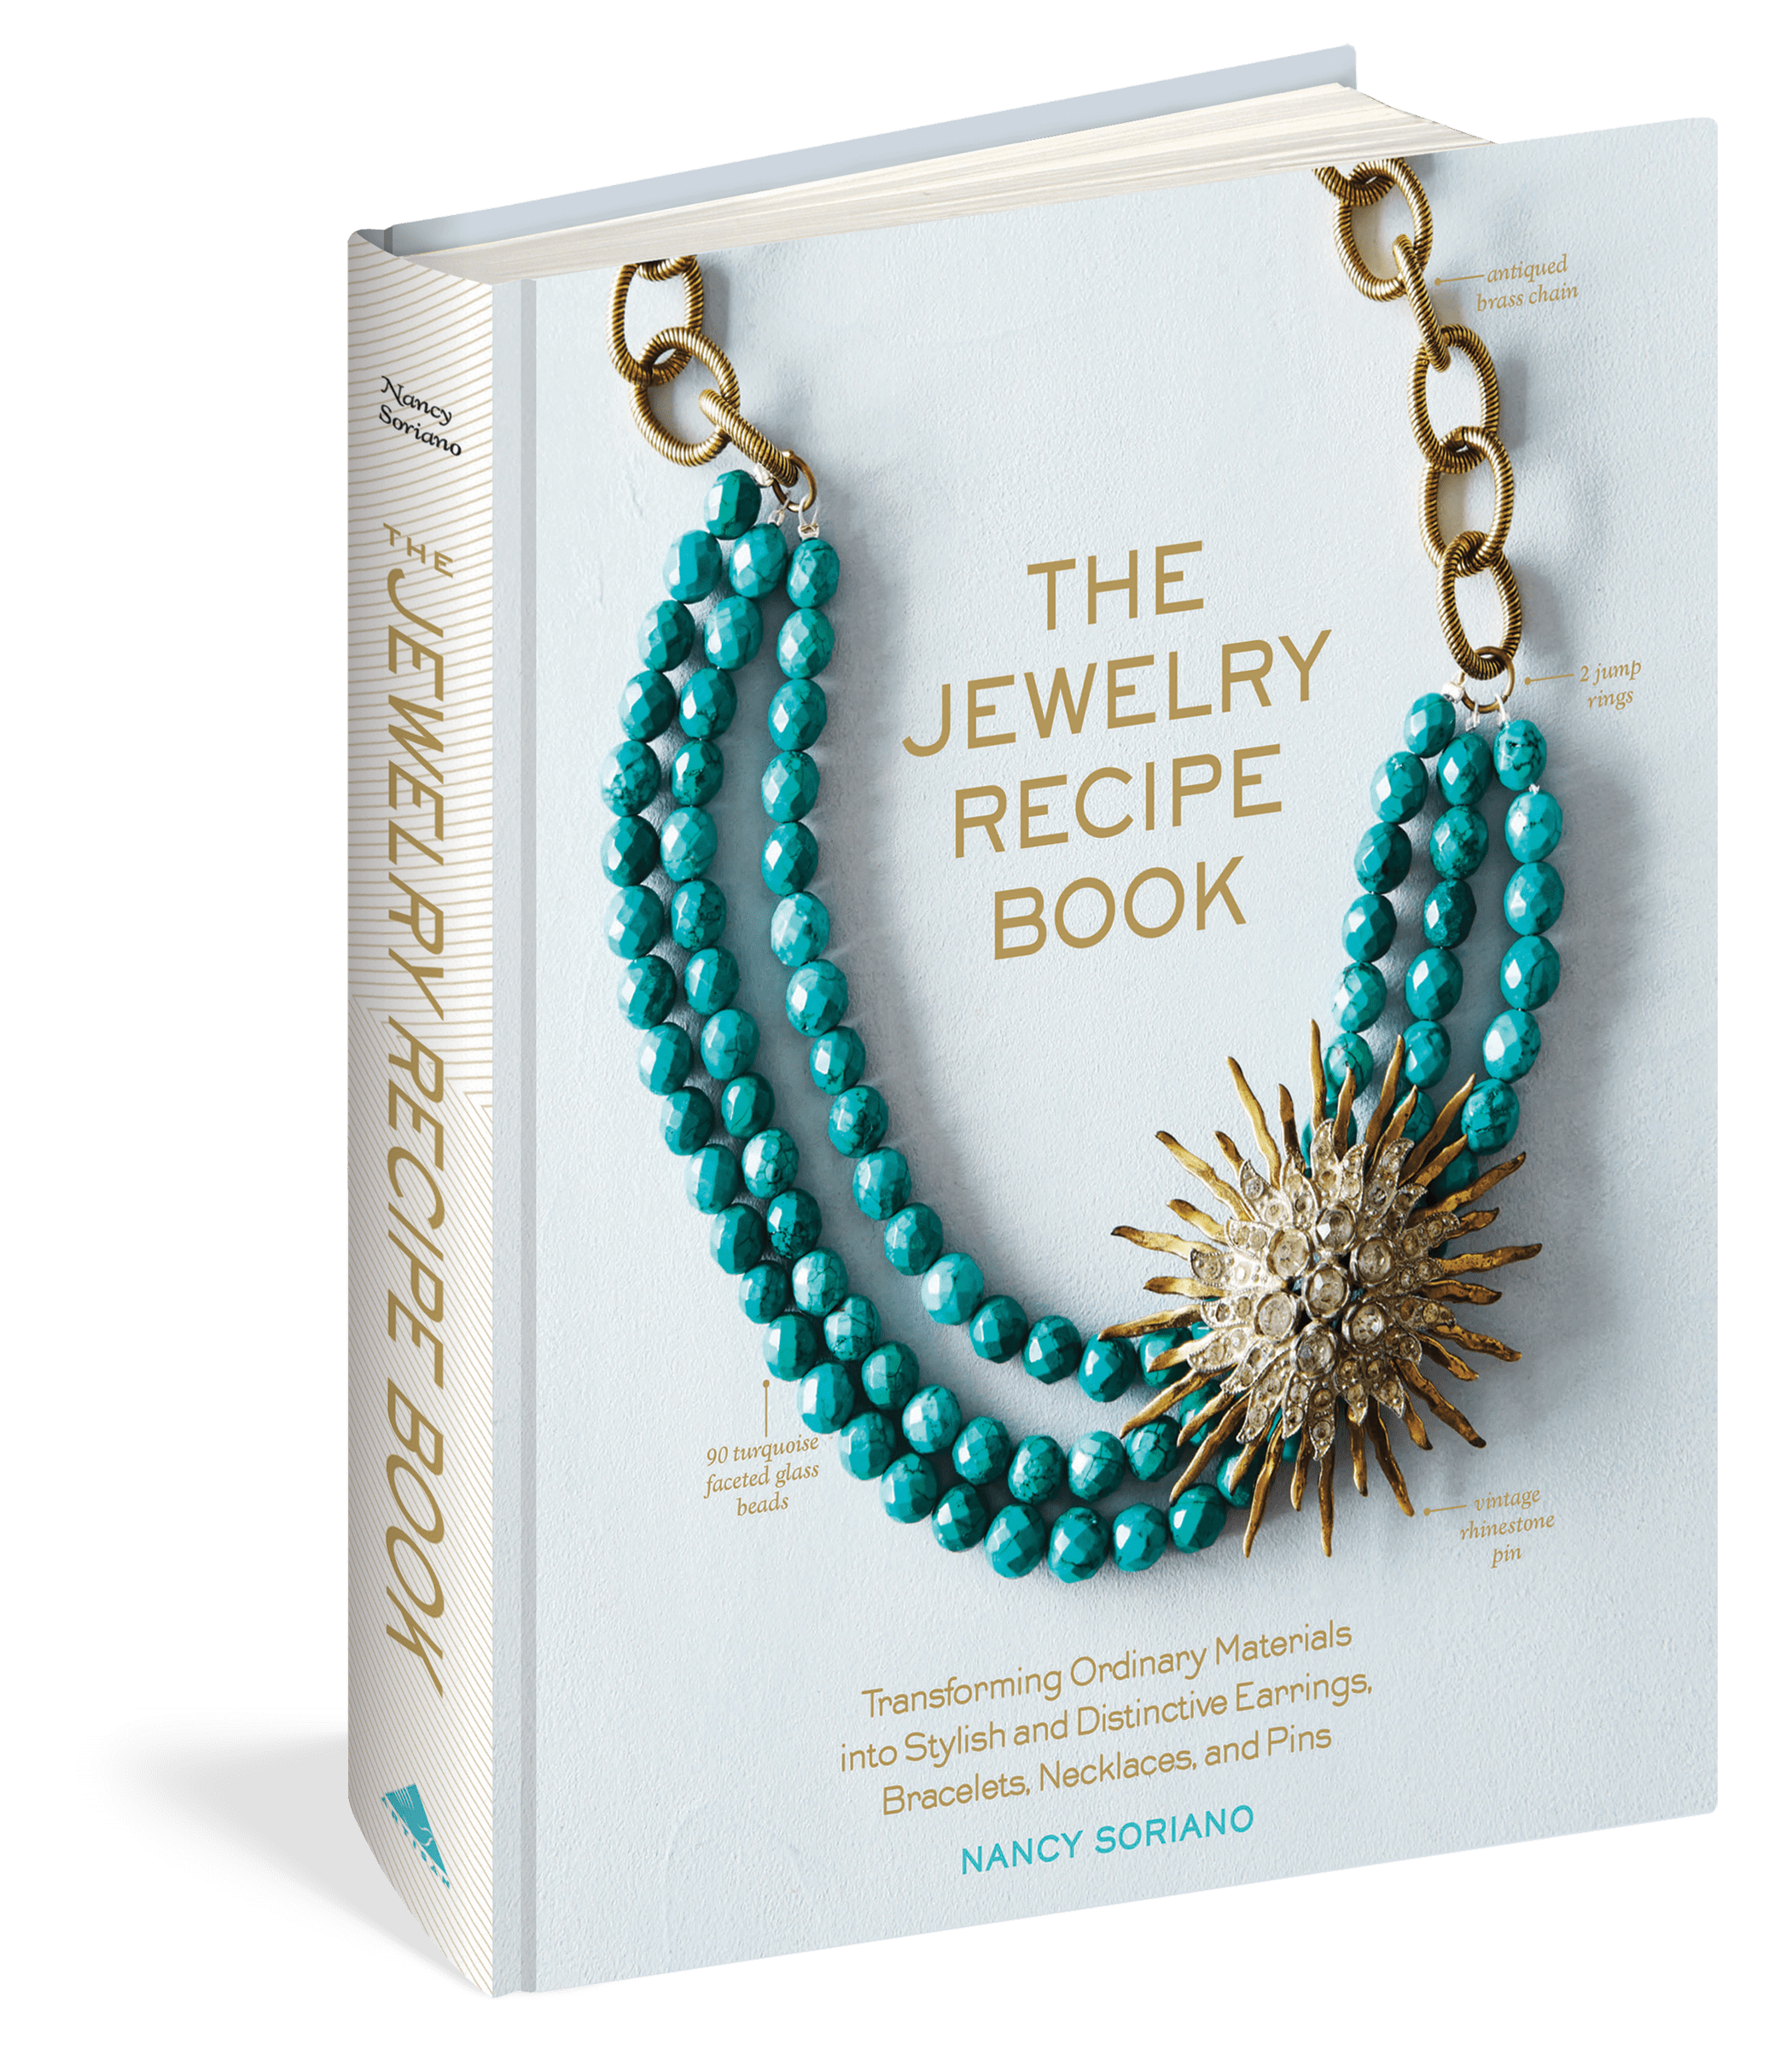 Jewelry Recipe Book by Nancy Soriano inspire wear read study in the pursuit